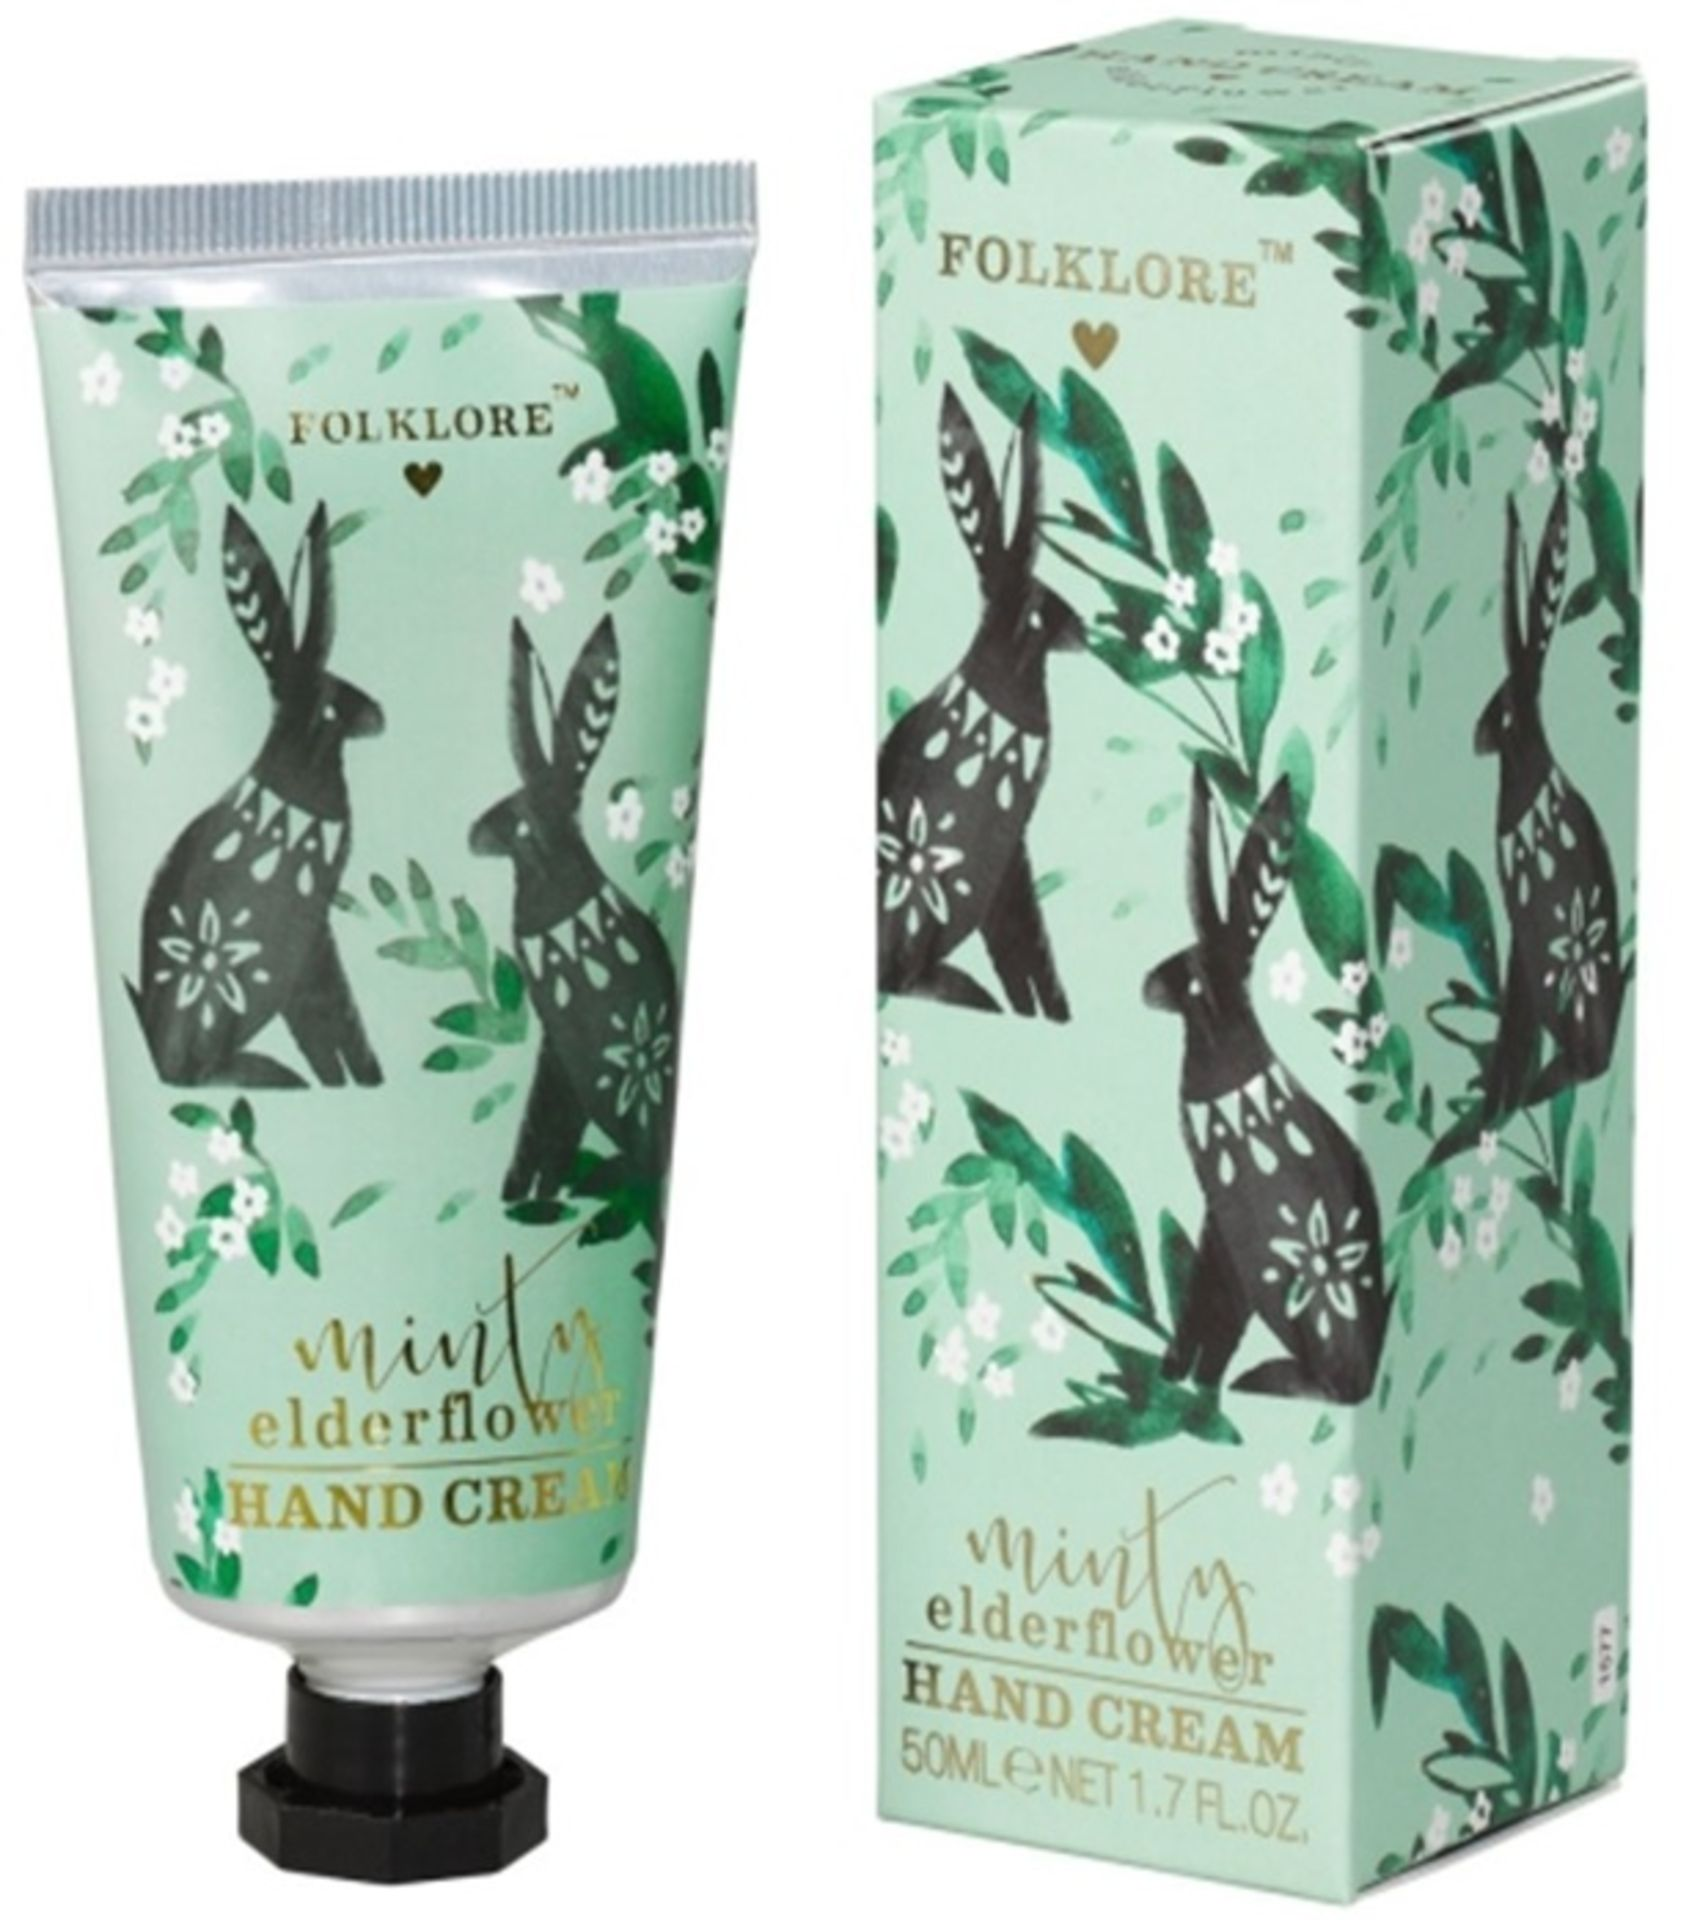 100 x Various Folklore Handcream | 50ml | Total RRP £899 - Image 2 of 4